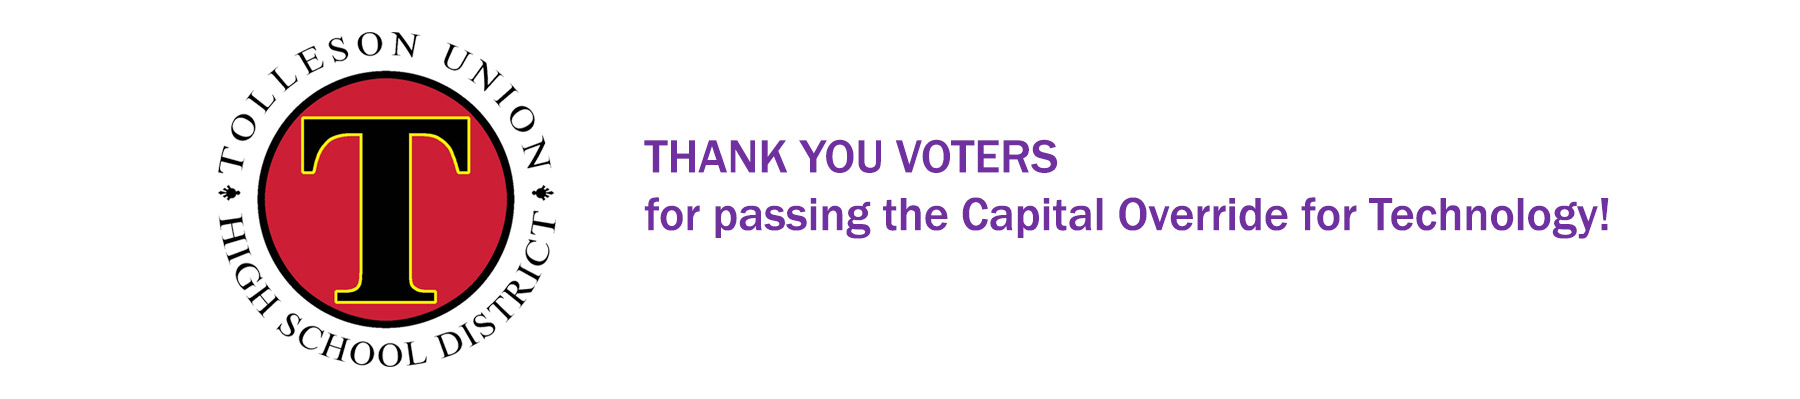 Thank you voters for passing the Capital Override for Technology!